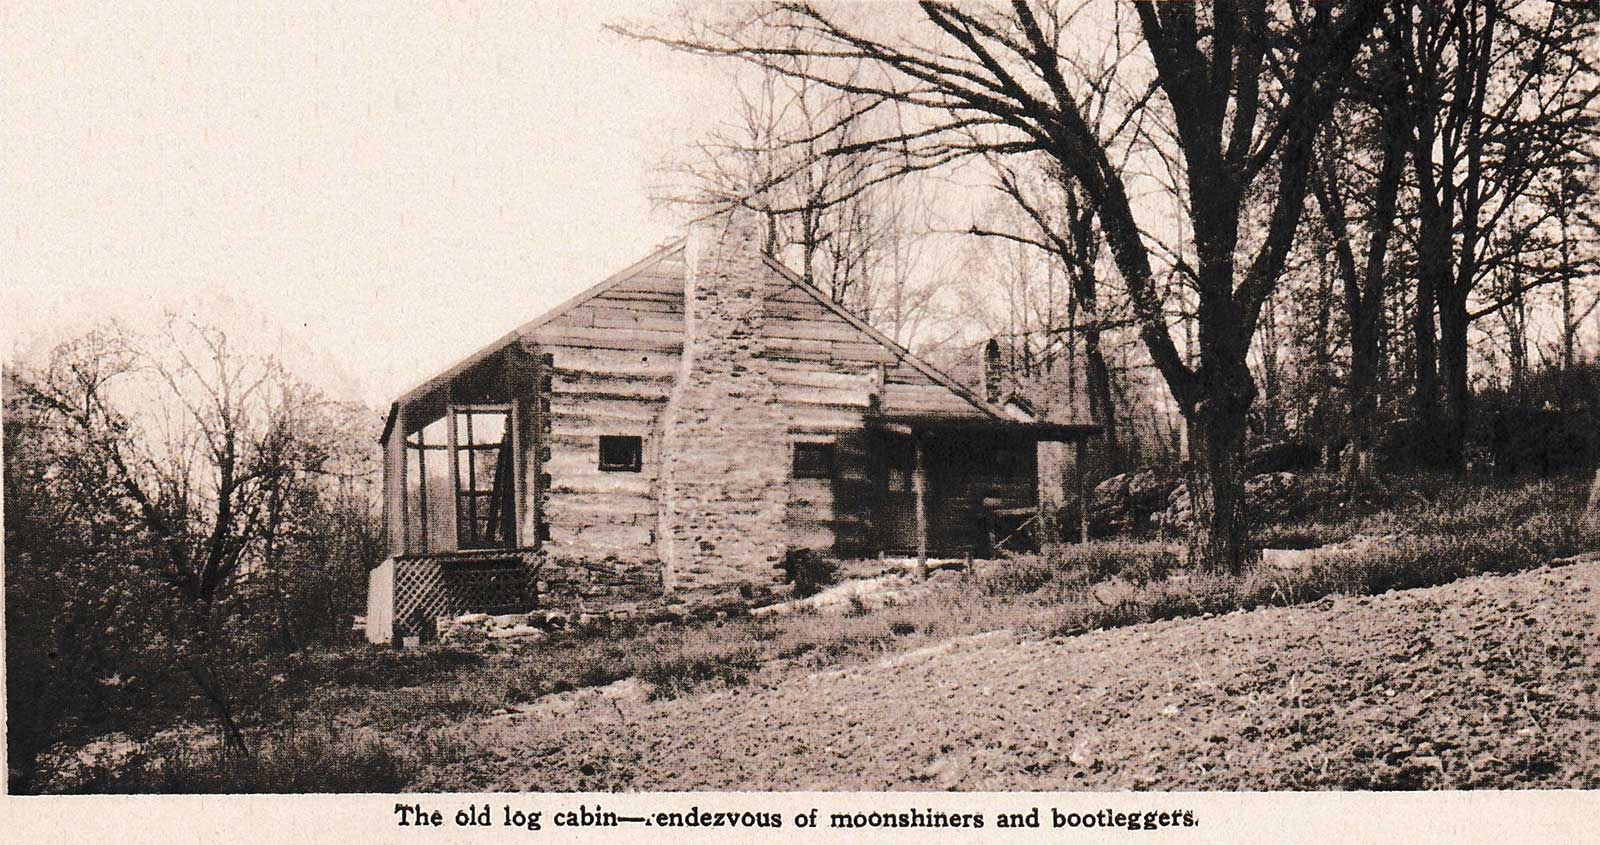 The old log cabin—rendezvous of moonshiners and bootleggers